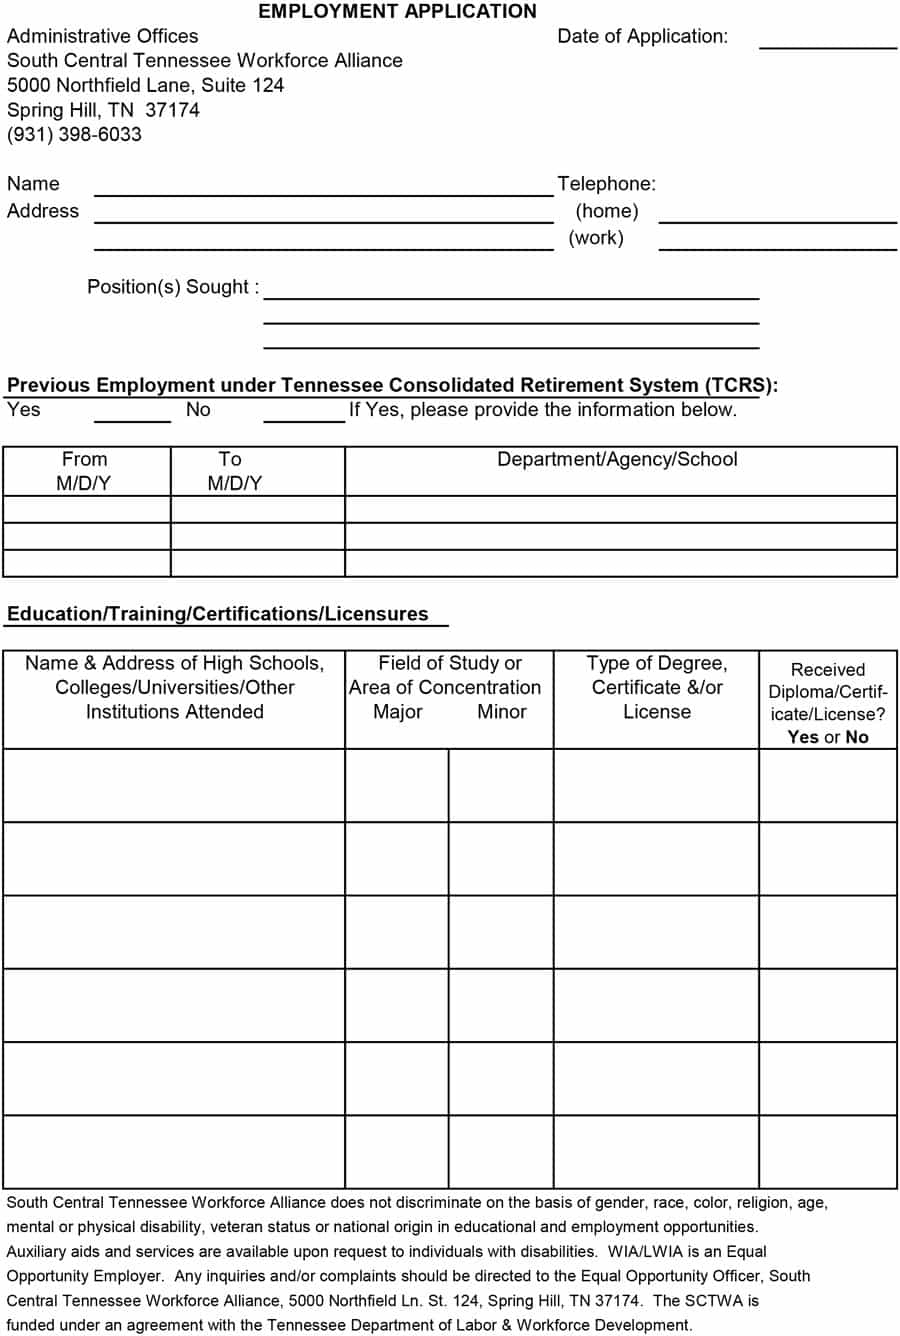 50 Free Employment / Job Application Form Templates [Printable - Free Printable Membership Forms